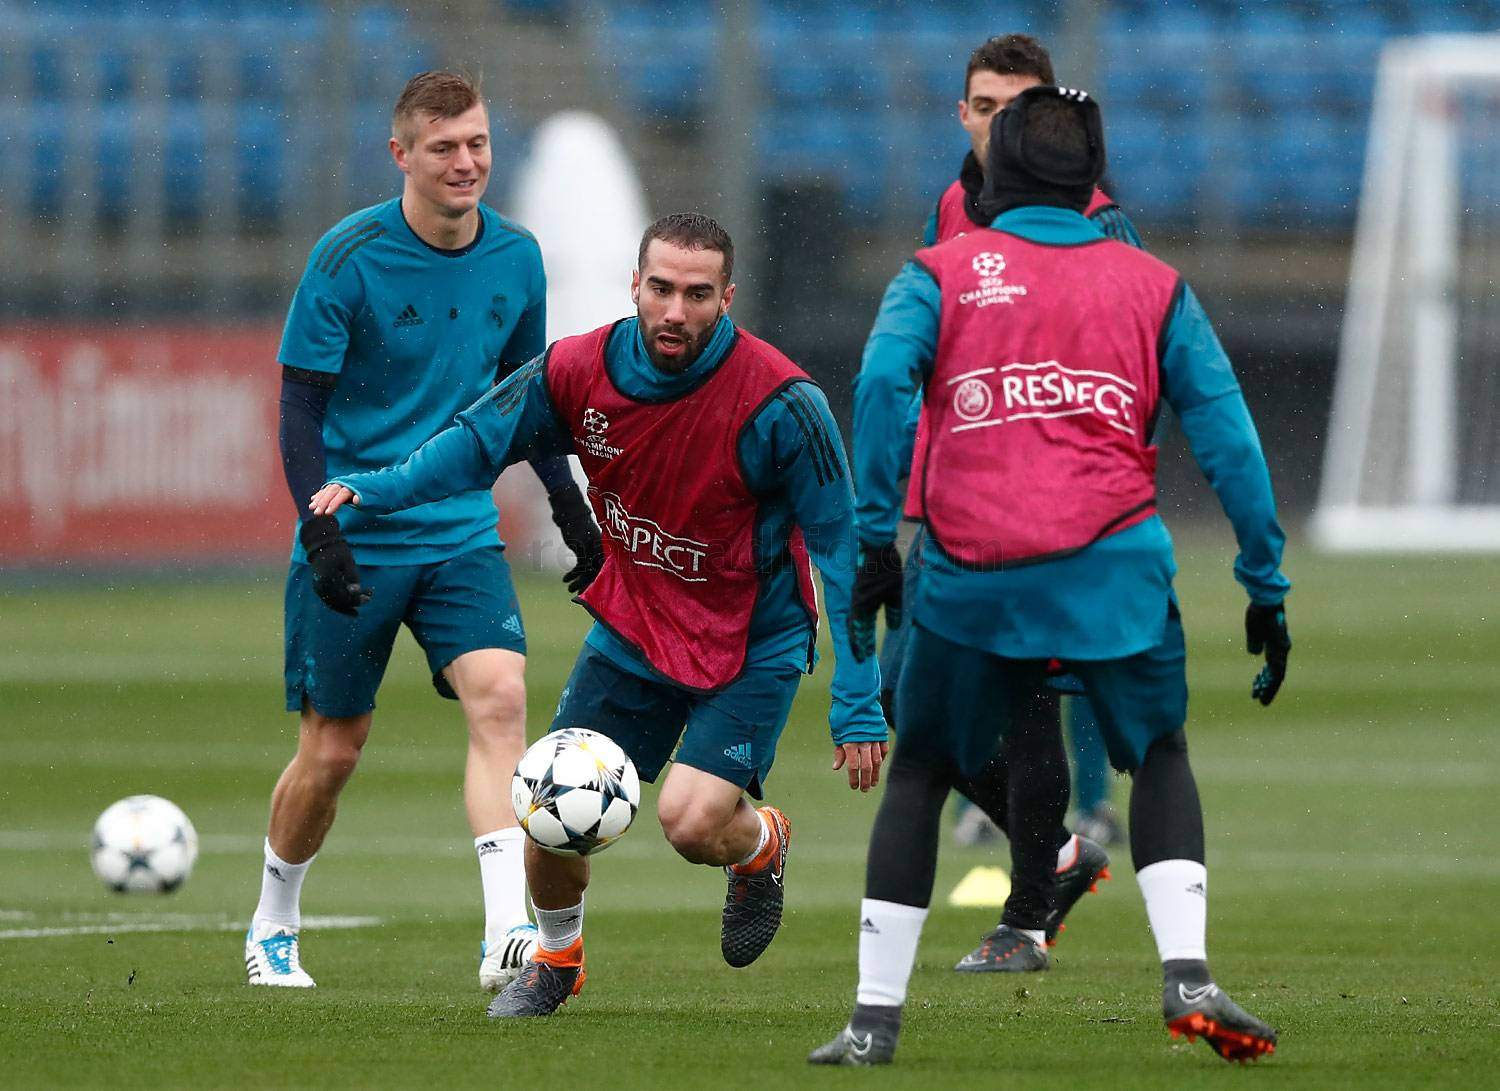 Real Madrid - Entrenamiento del Real Madrid - 10-04-2018